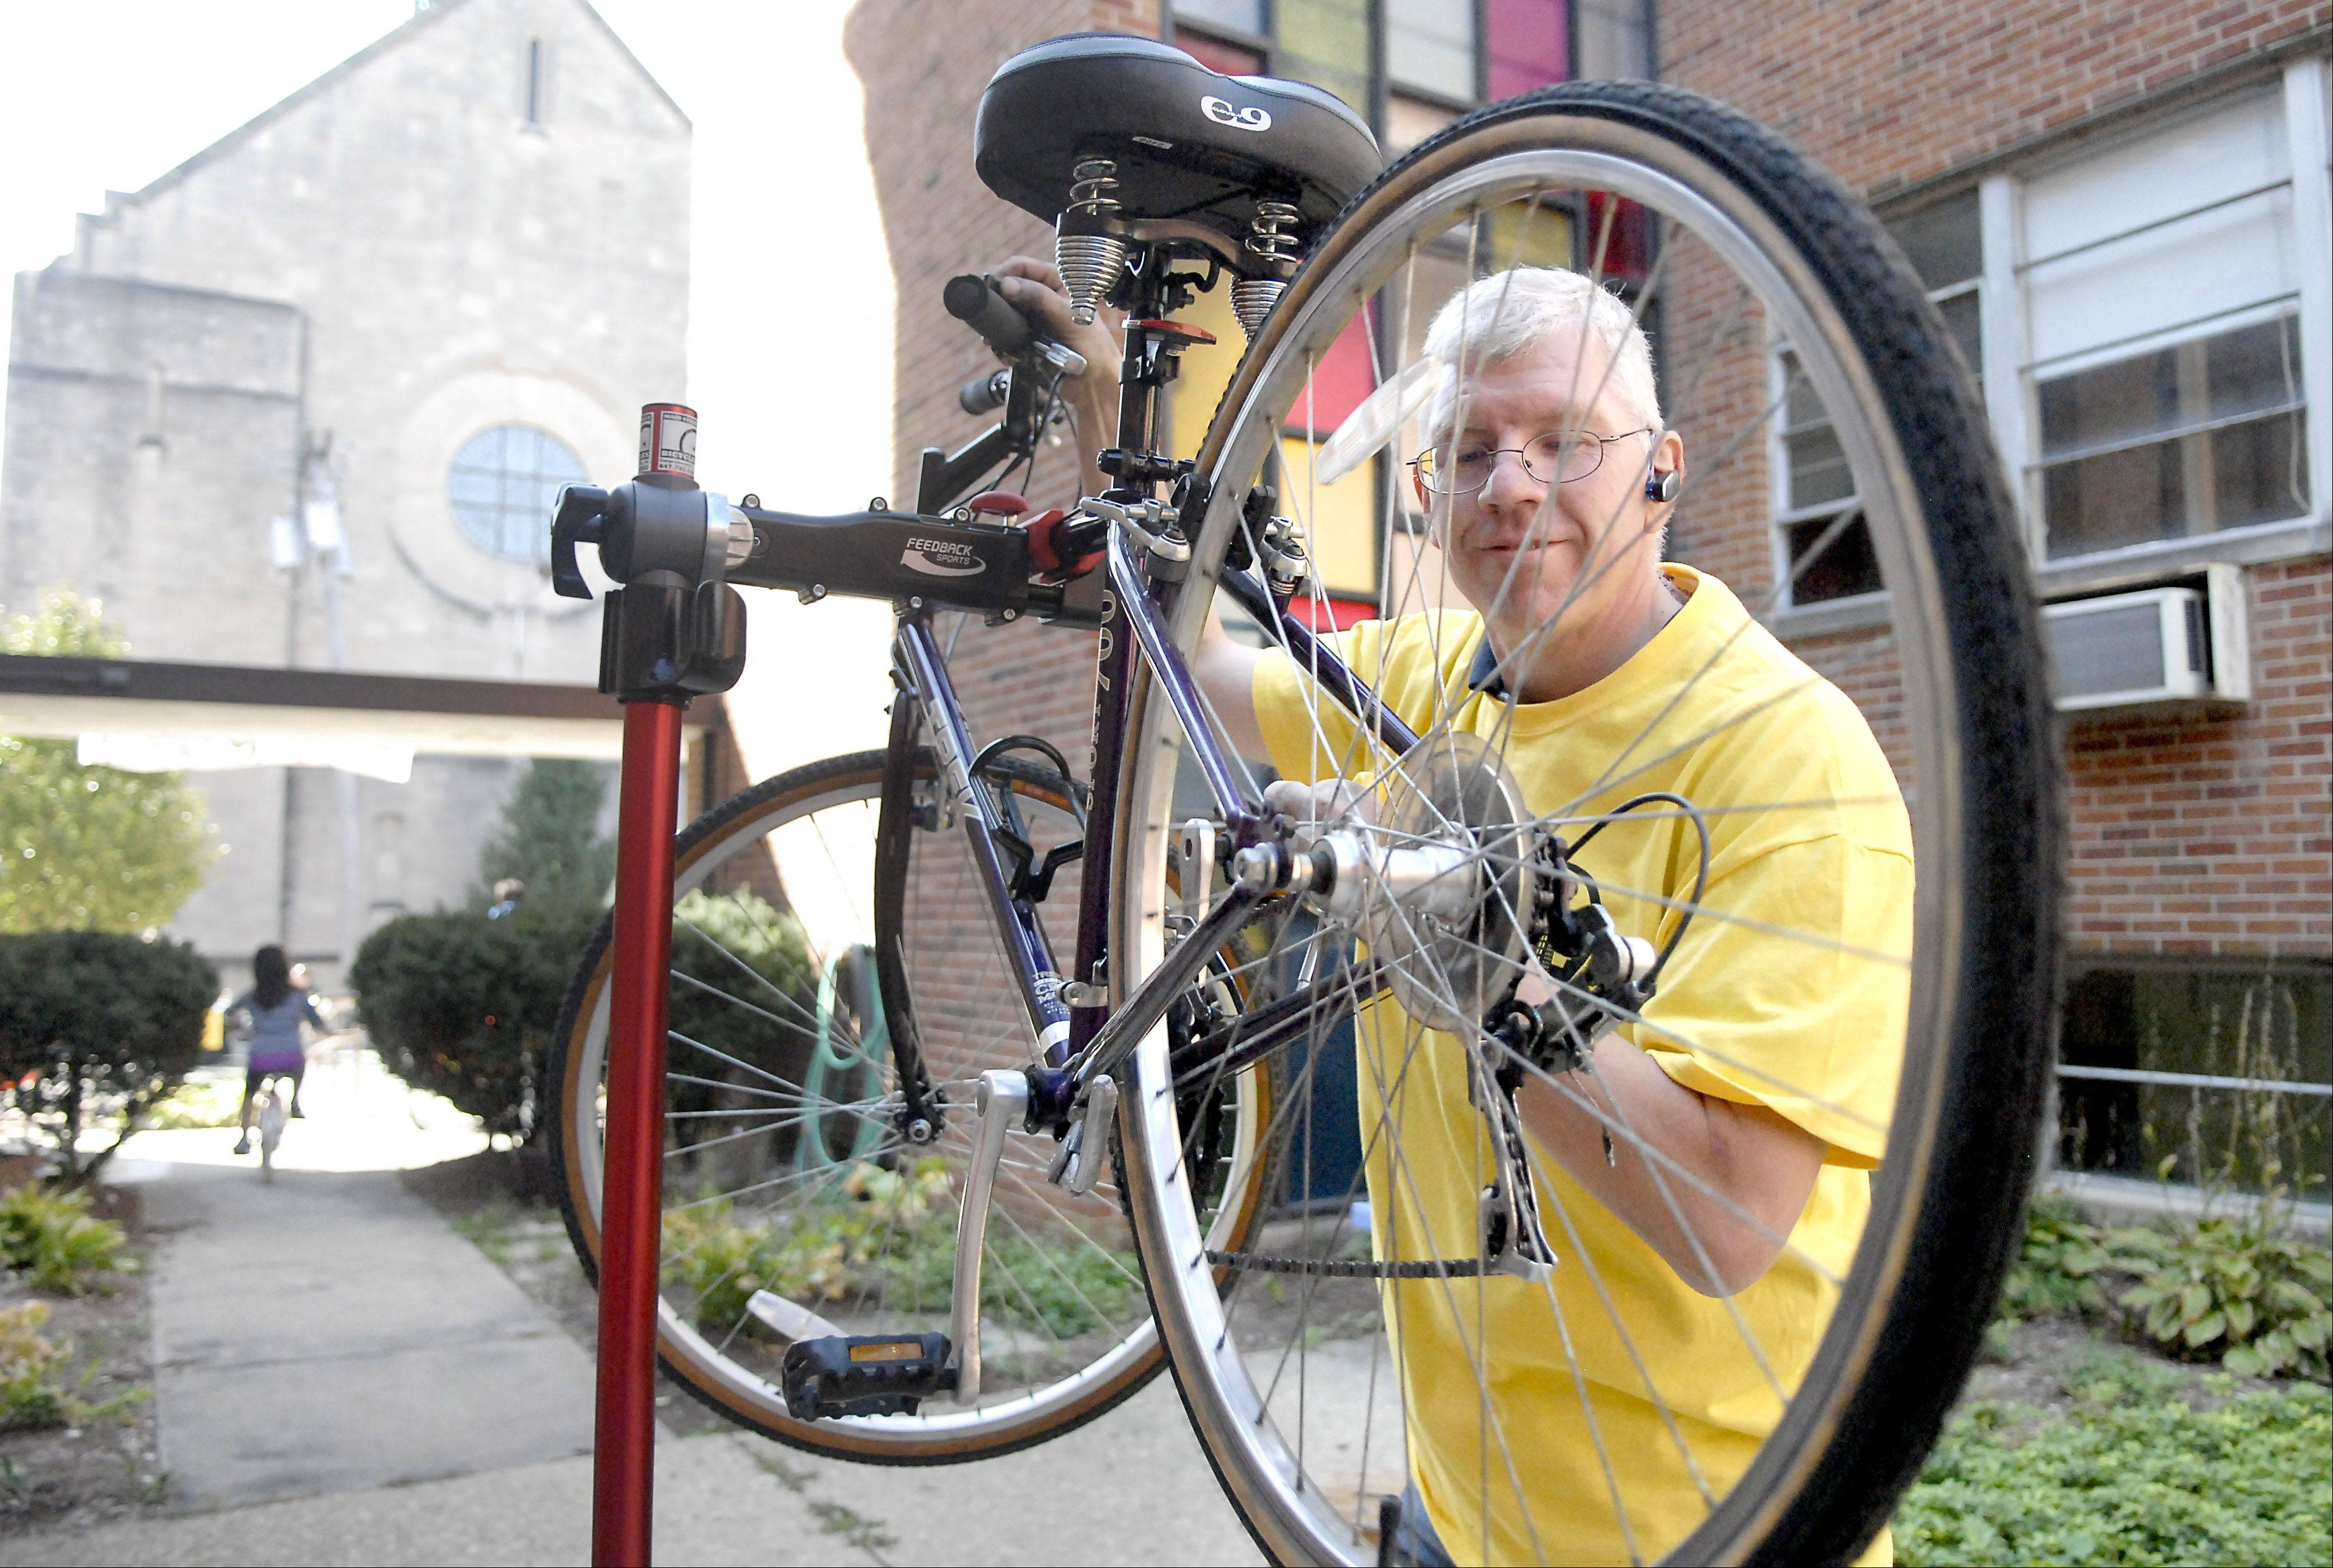 Volunteer Jeff Bratko of East Dundee gets a bike chain running smoothly in the courtyard of Vineyard Church at the Love Elgin Day event last September. It was the second year bike enthusiast Bratko, who is a member of the Vineyard Church of Elgin, has helped at the event.